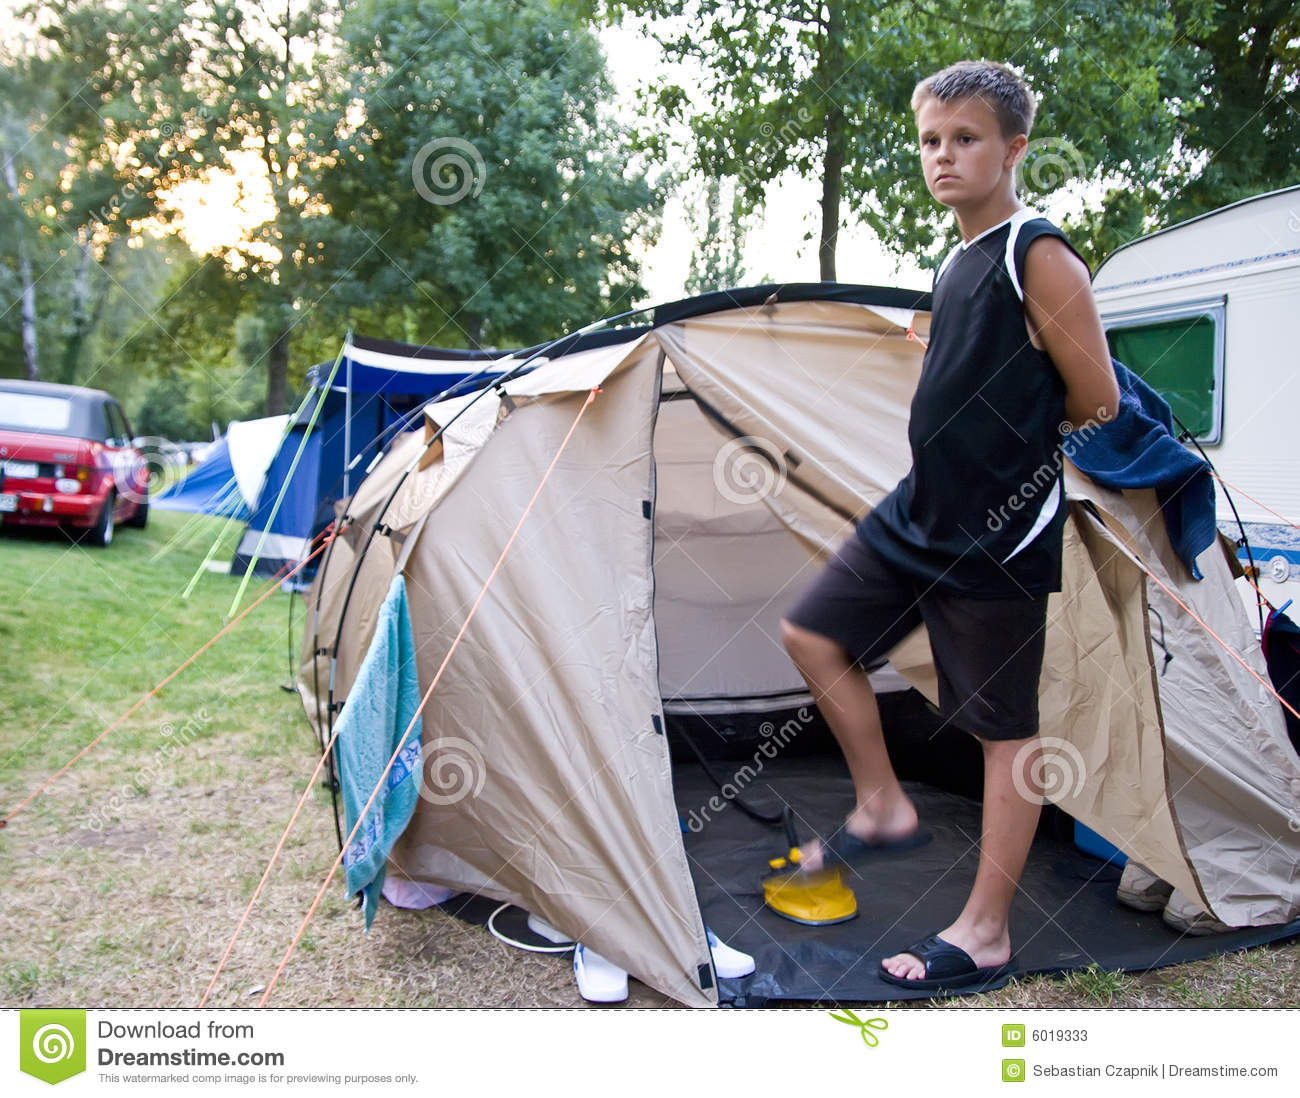 ... teenage boy inflating a mattress with a foot pump, standing at a tent